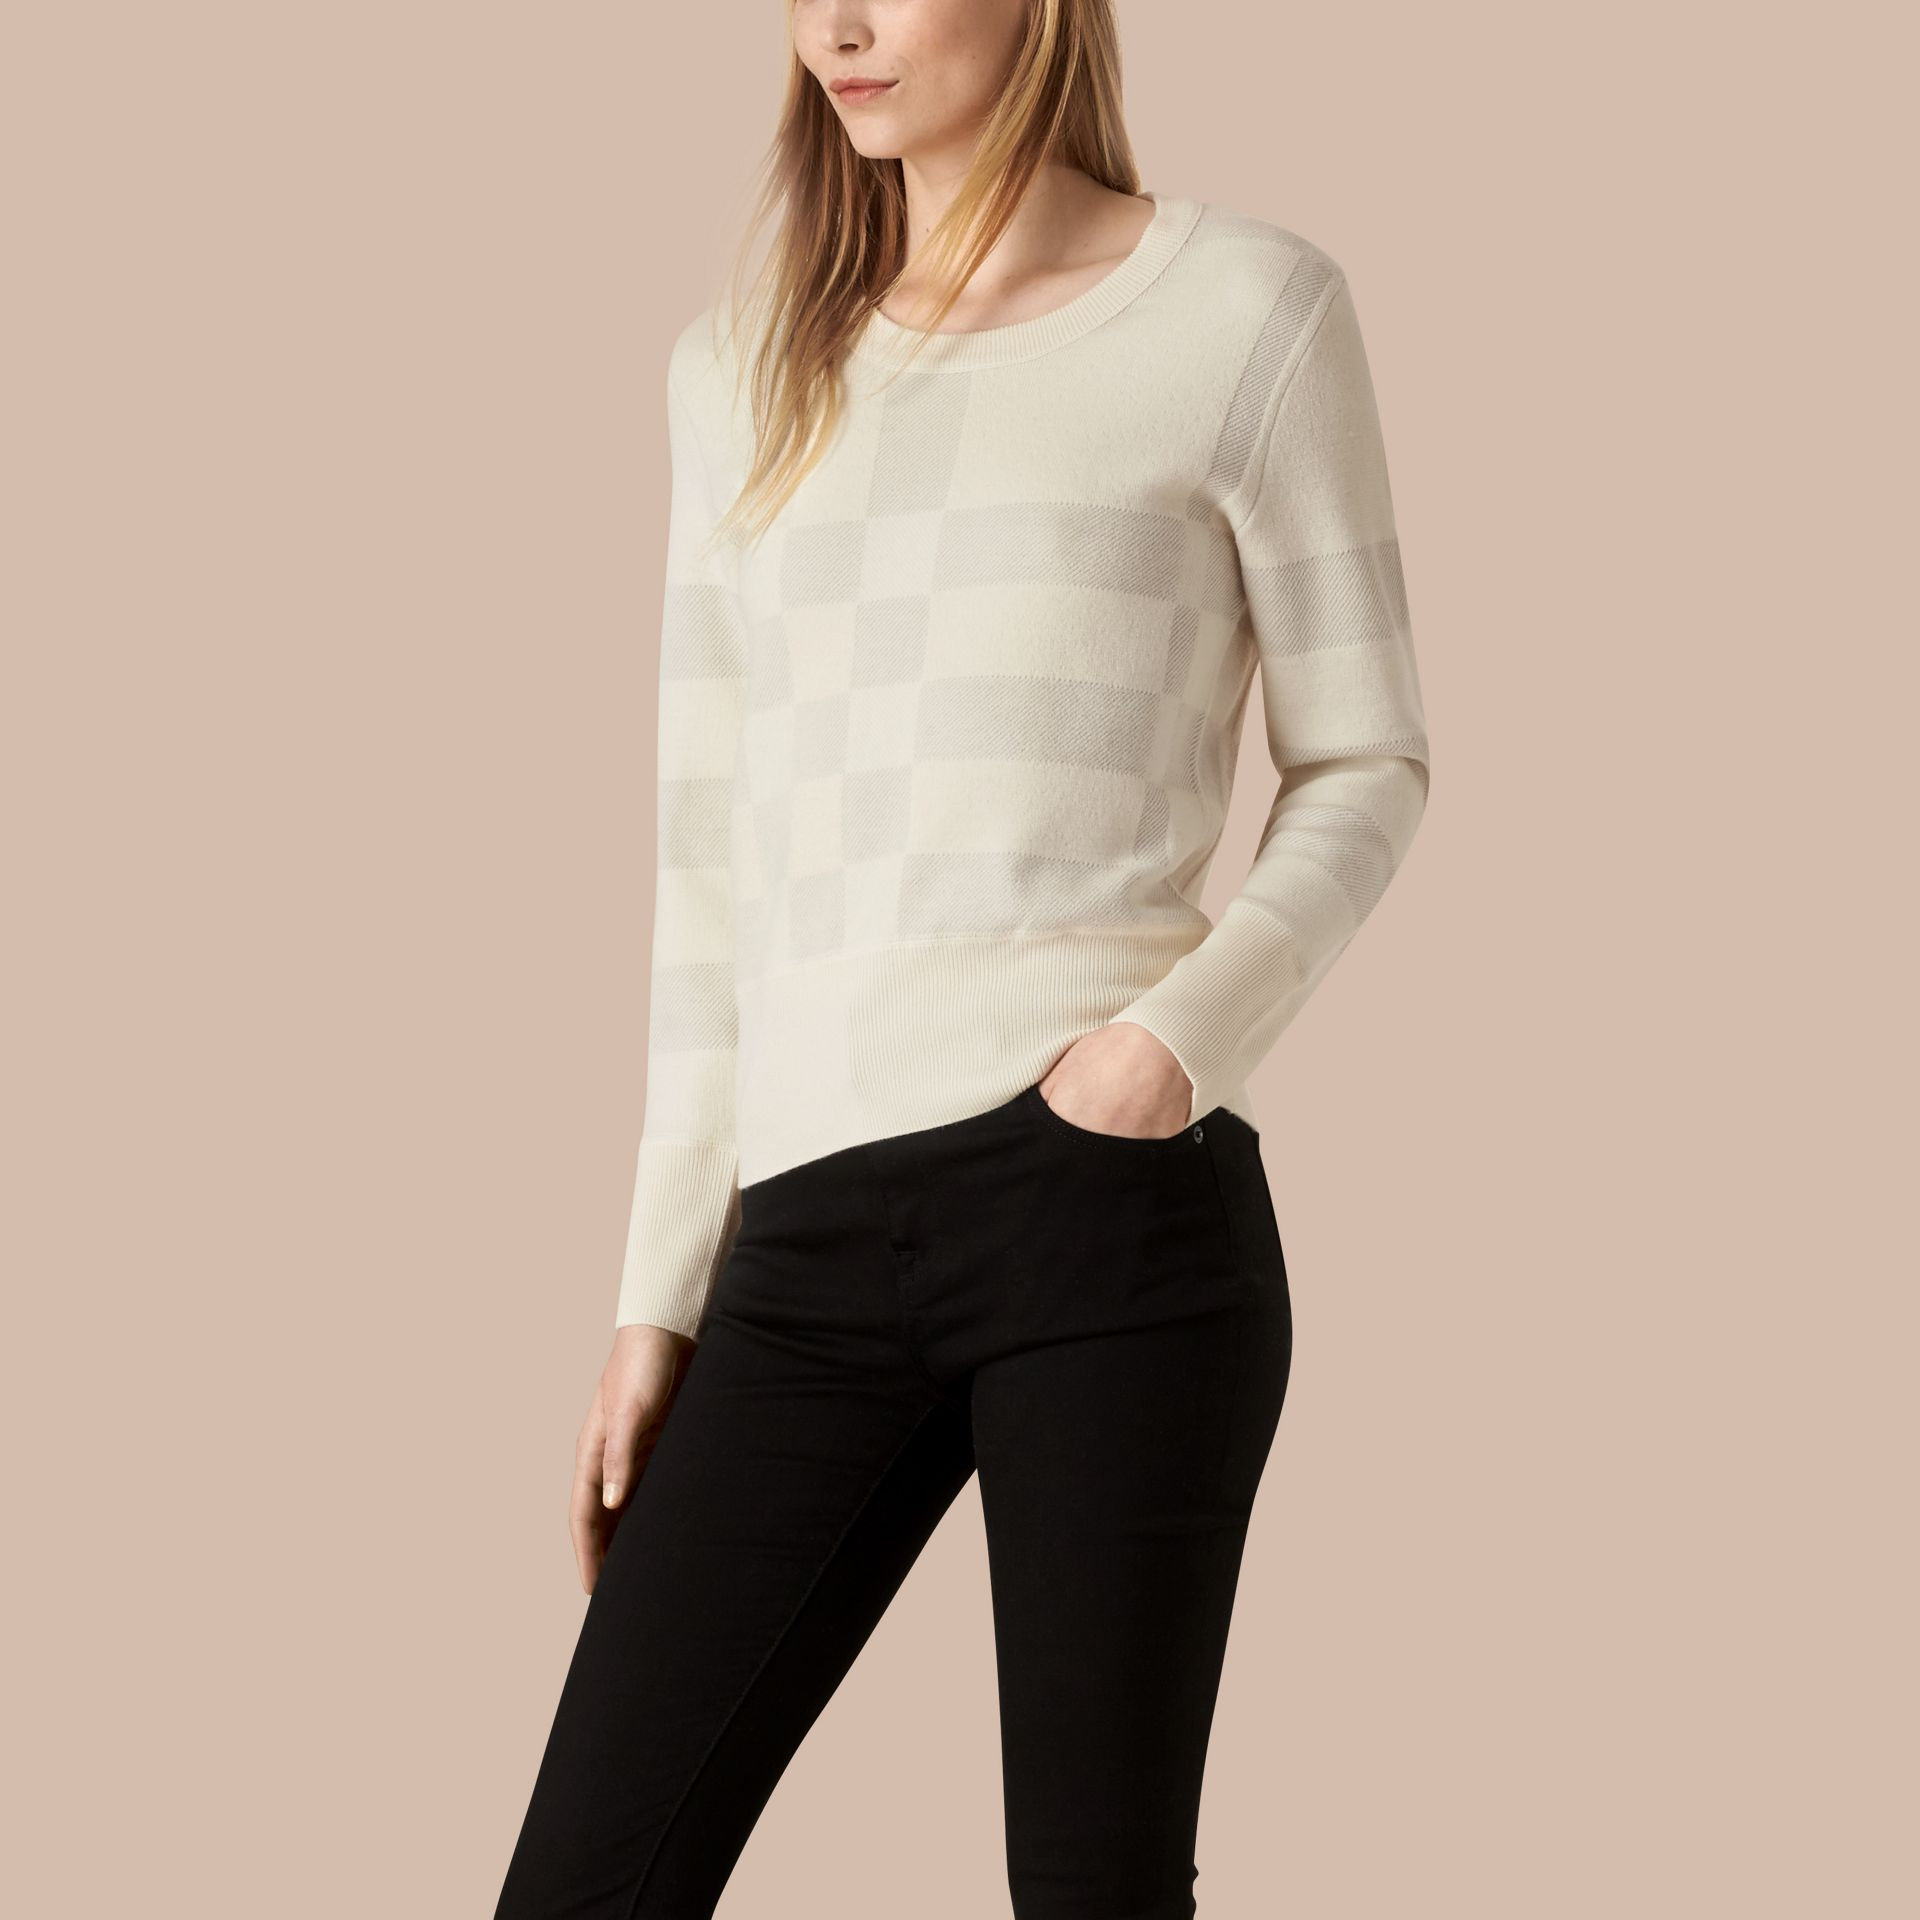 Natural white Check Knit Wool Blend Sweater Natural White - gallery image 1